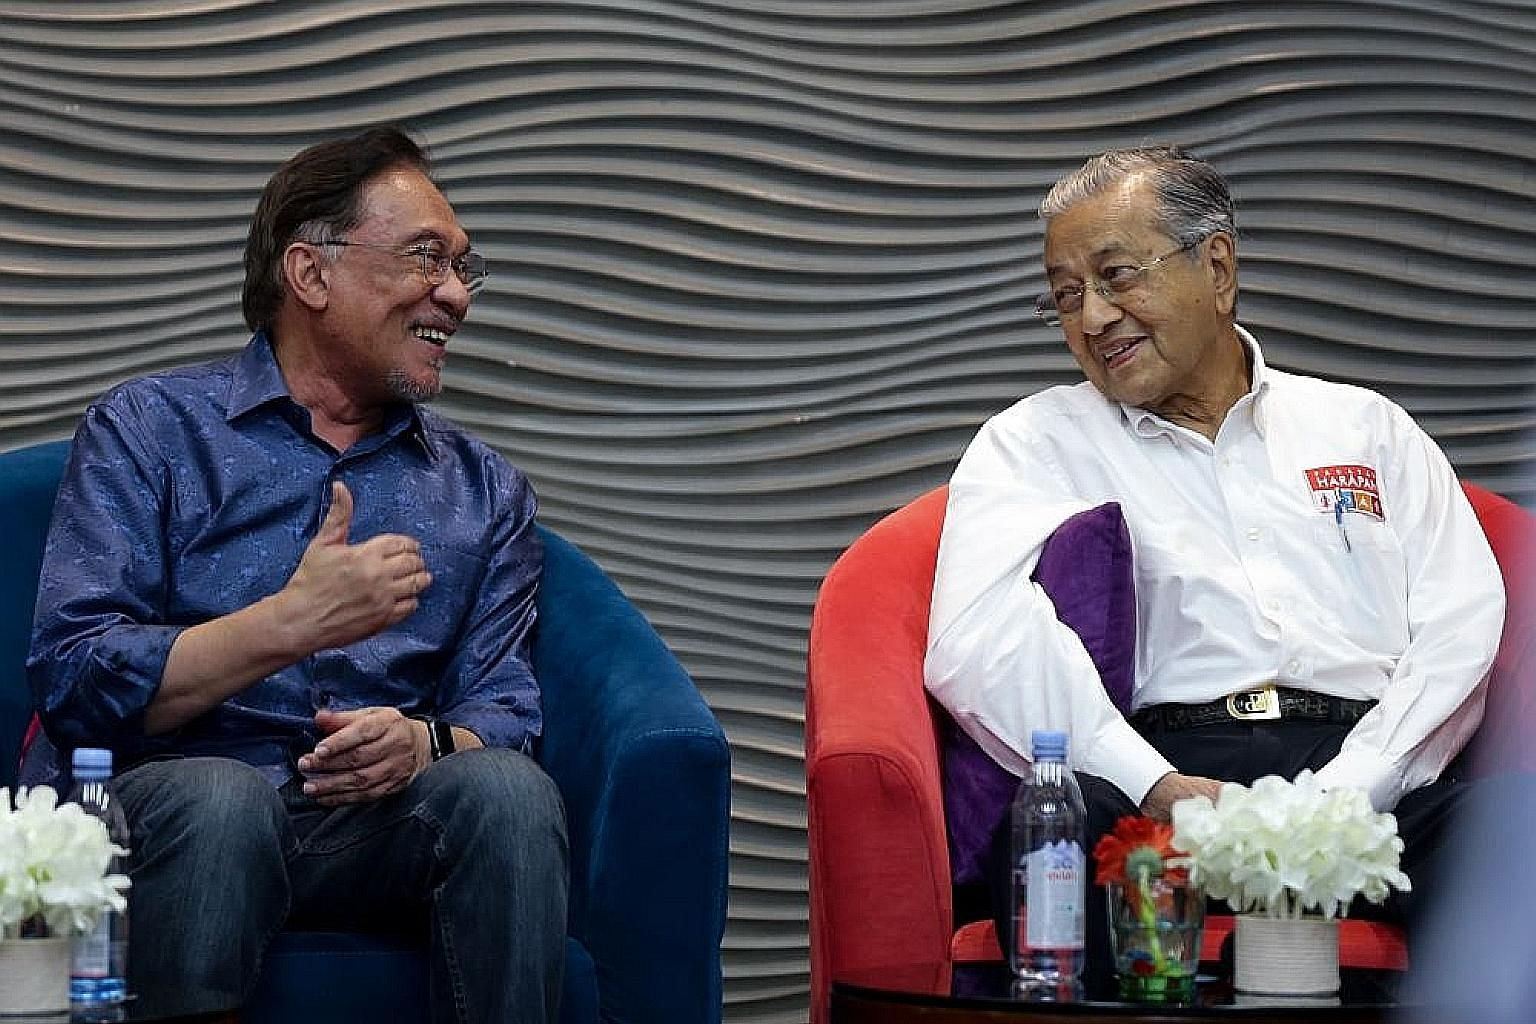 """A July 19 photo of Parti Keadilan Rakyat leader Anwar Ibrahim (left) with Prime Minister Mahathir Mohamad at the party's retreat in Port Dickson. Datuk Seri Anwar told Bloomberg there was an understanding he should take power around next May, """"but I"""